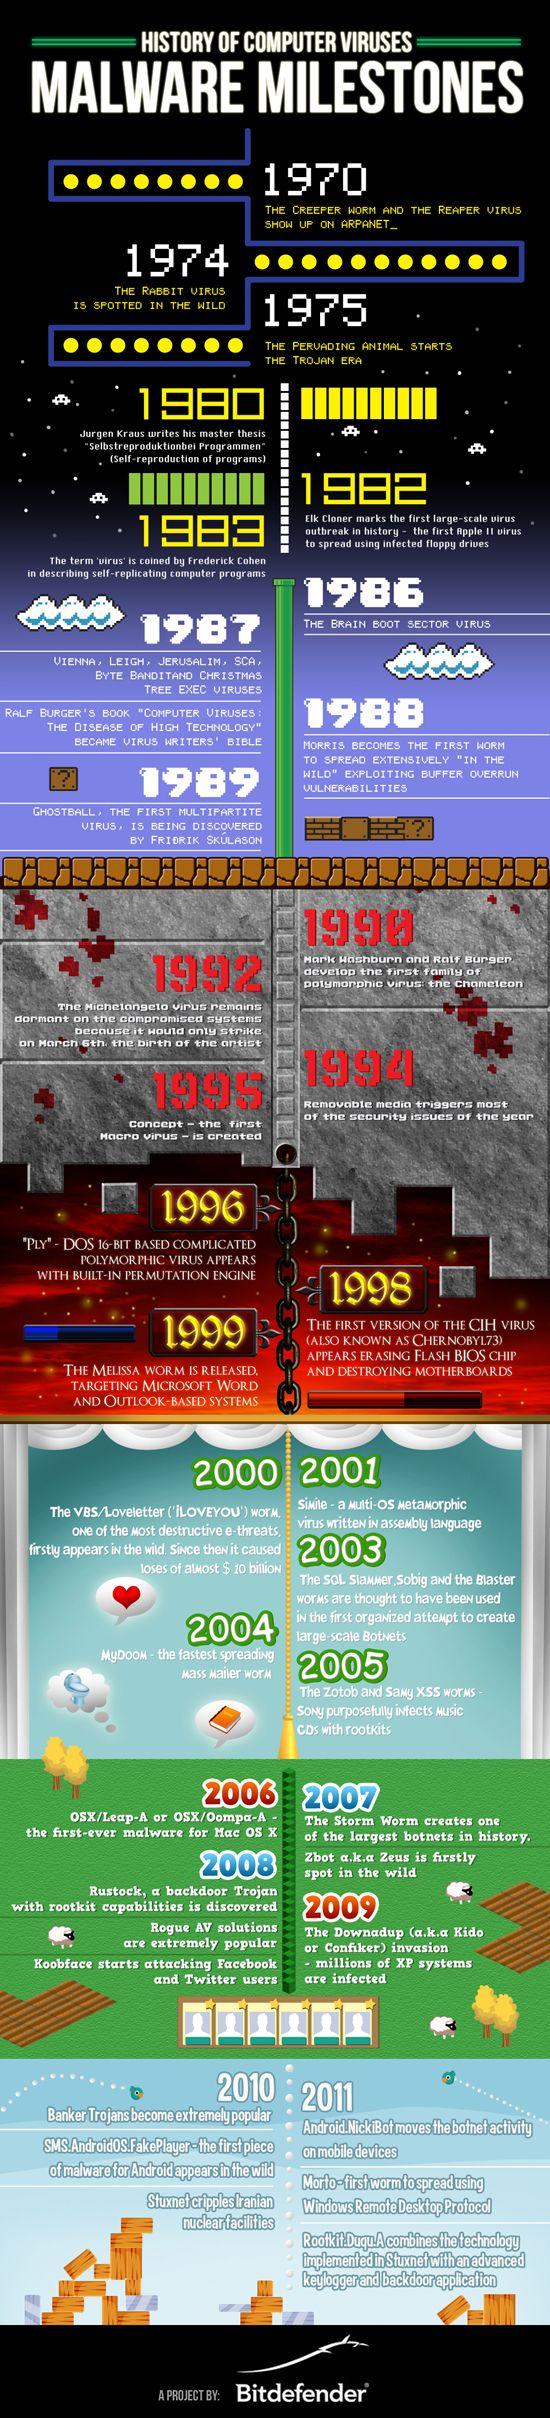 Infographic: Timeline and history of computer viruses. #infografia #infographic